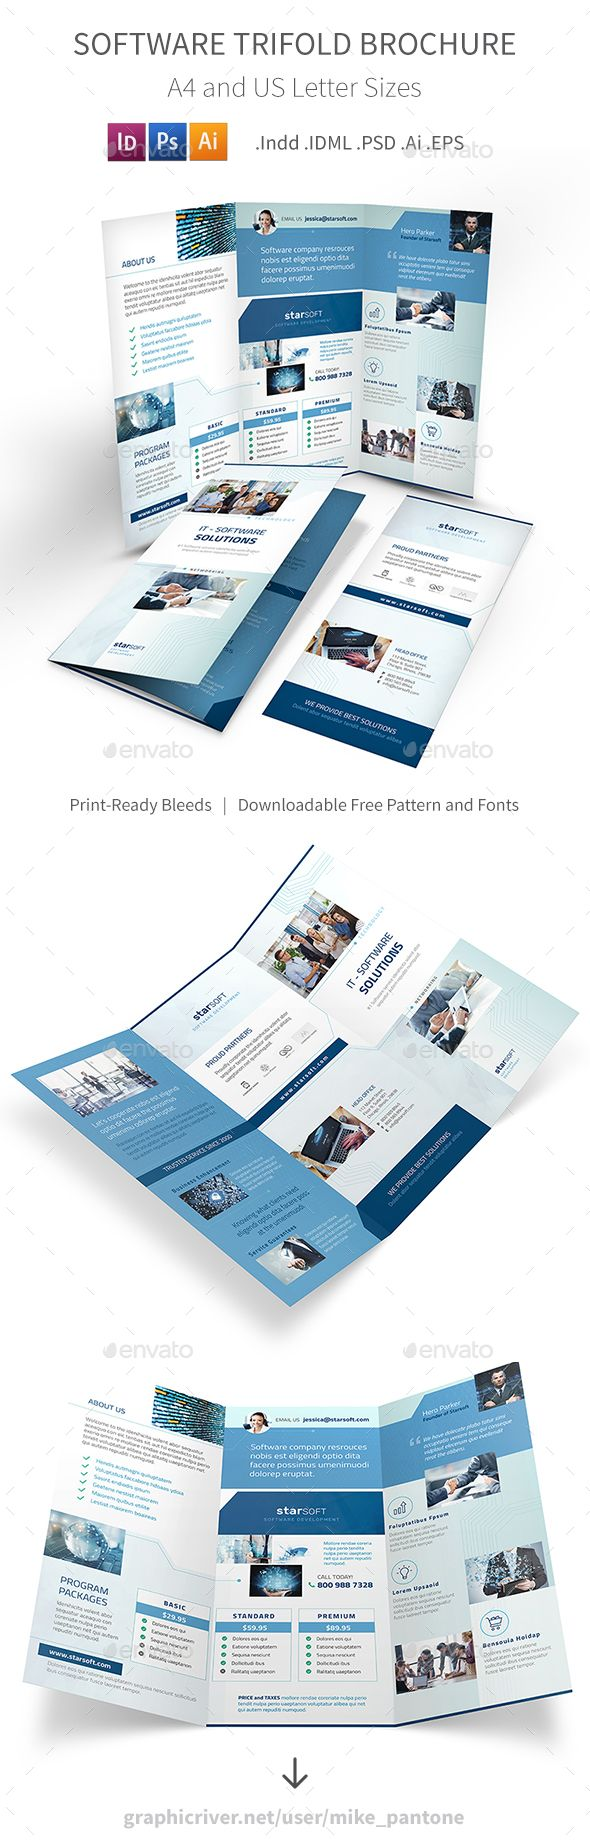 Software Business Trifold Brochure Template PSD, Vector EPS, InDesign INDD, AI Illustrator